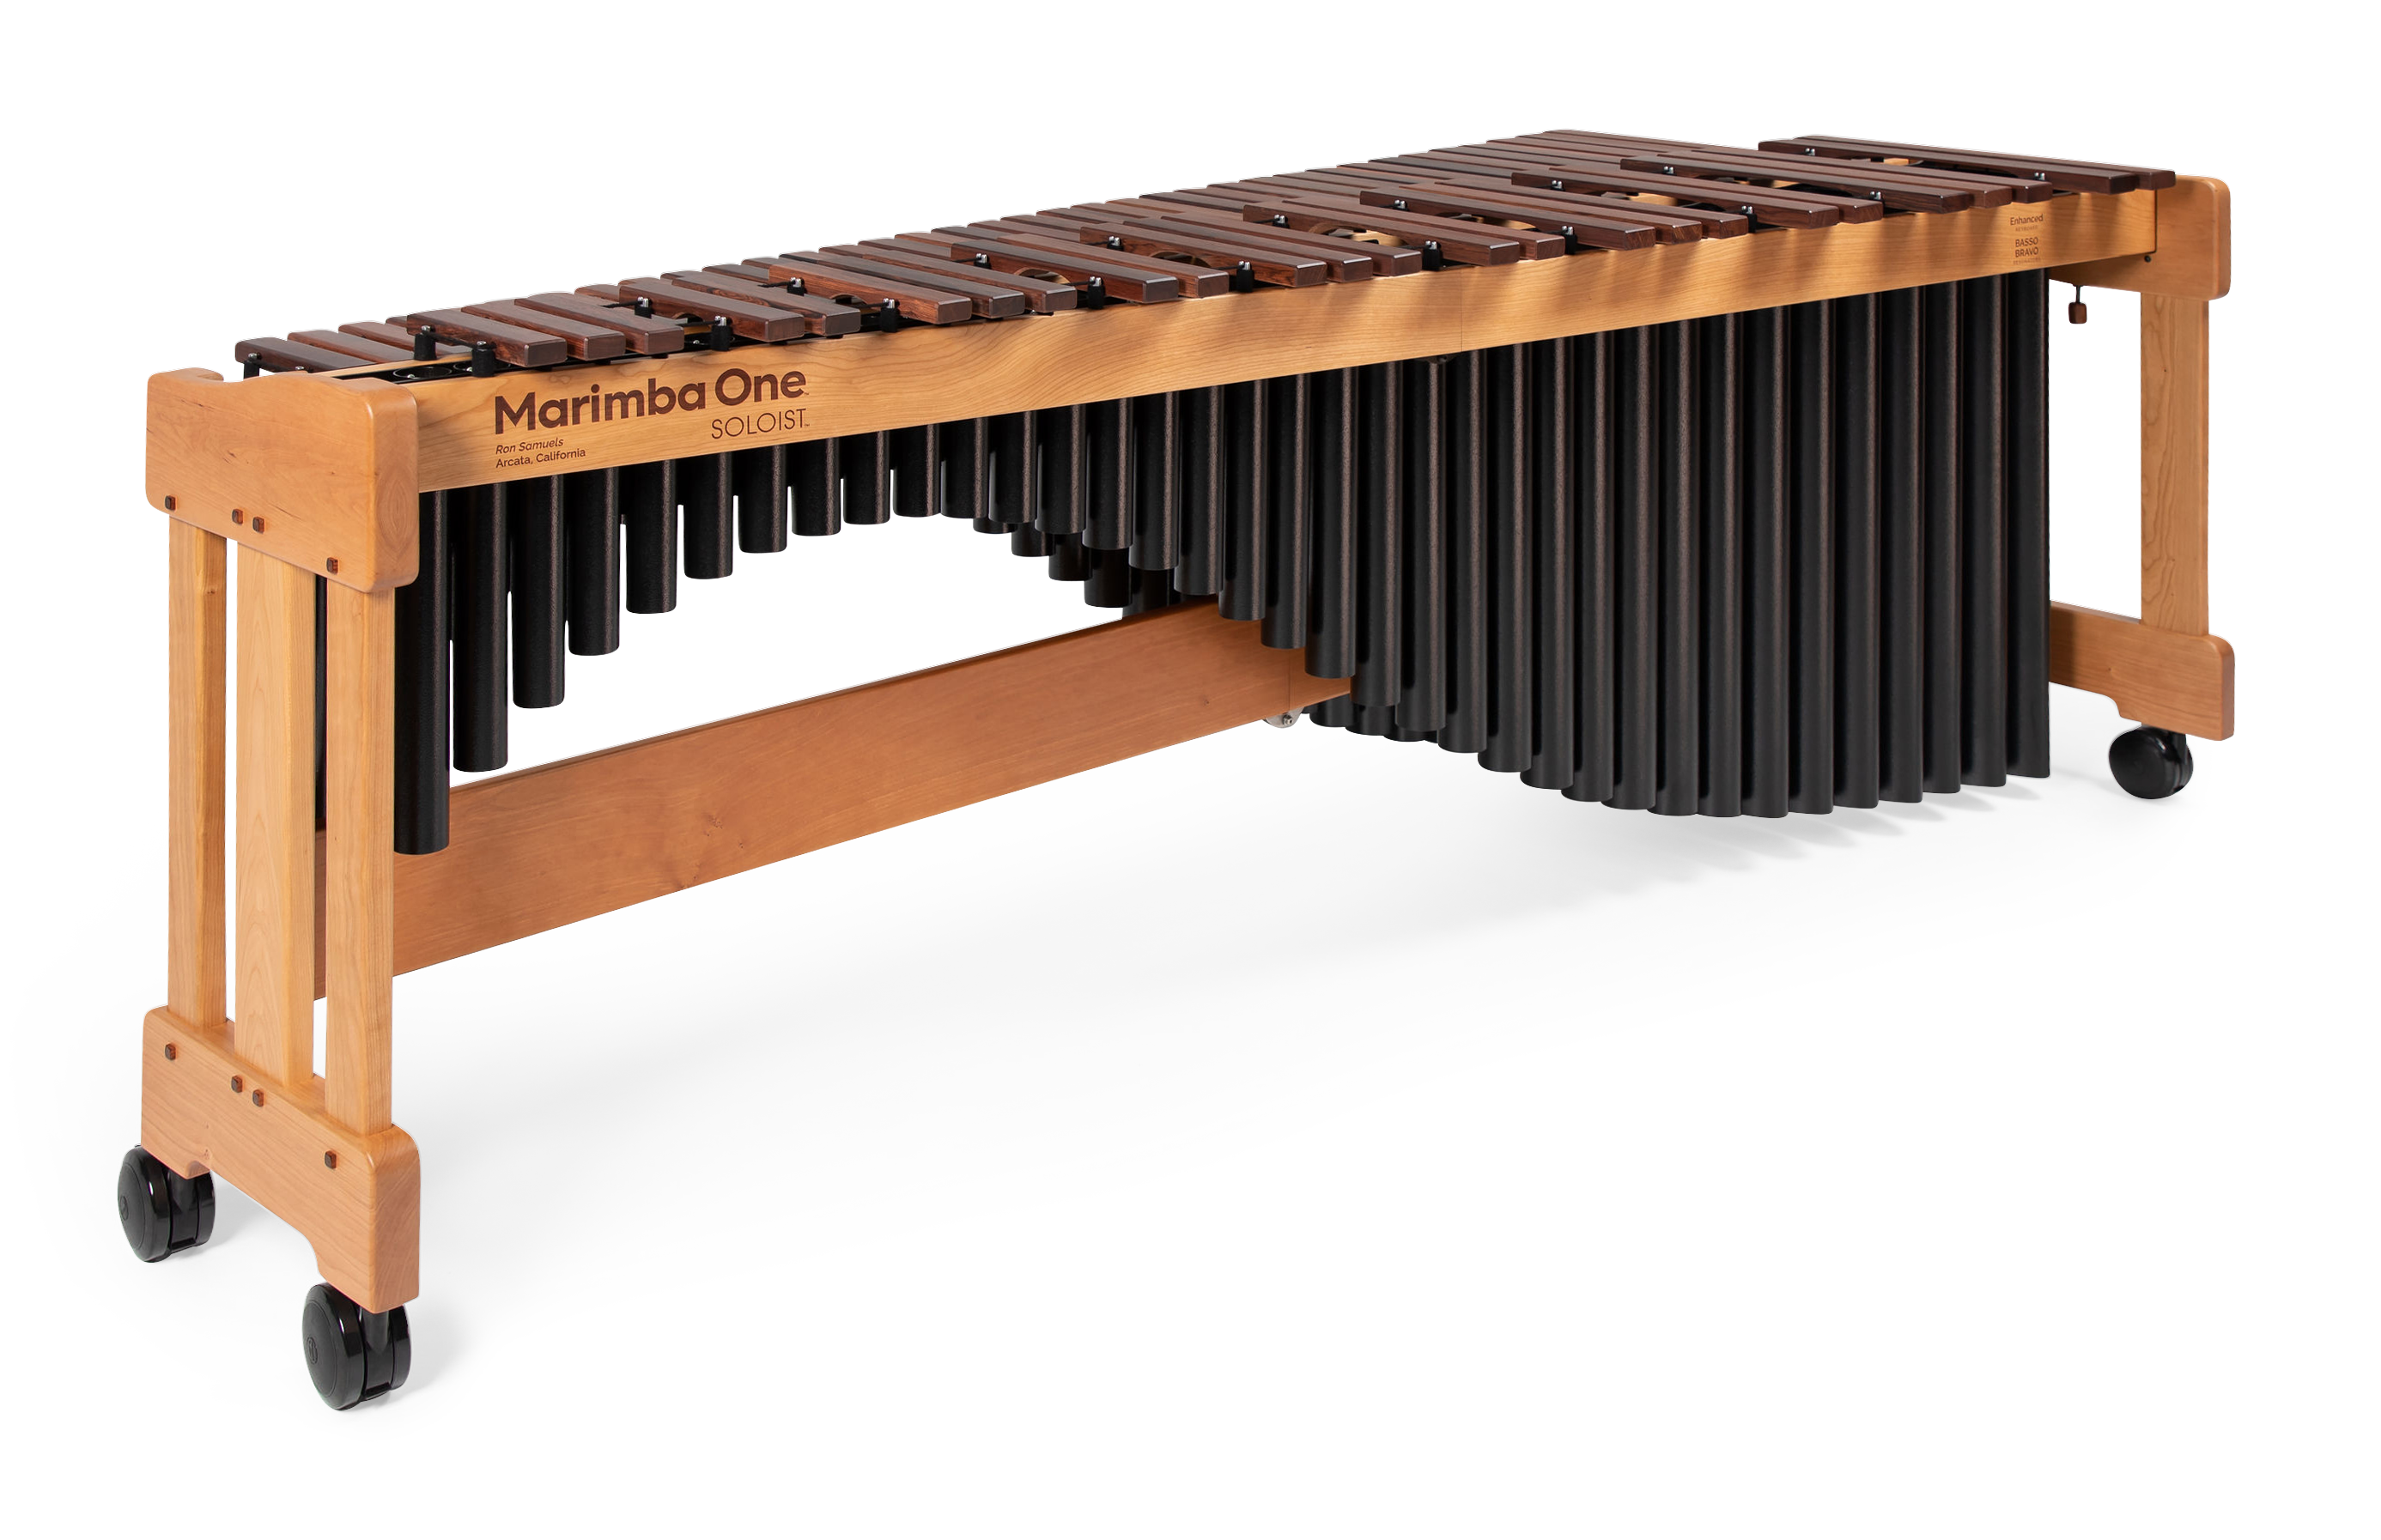 #9901 Marimba One Soloist™ 5.0 Octave with Classic resonators, Traditional keyboard 五個八度、經典共鳴管、傳統琴鍵、玫瑰木